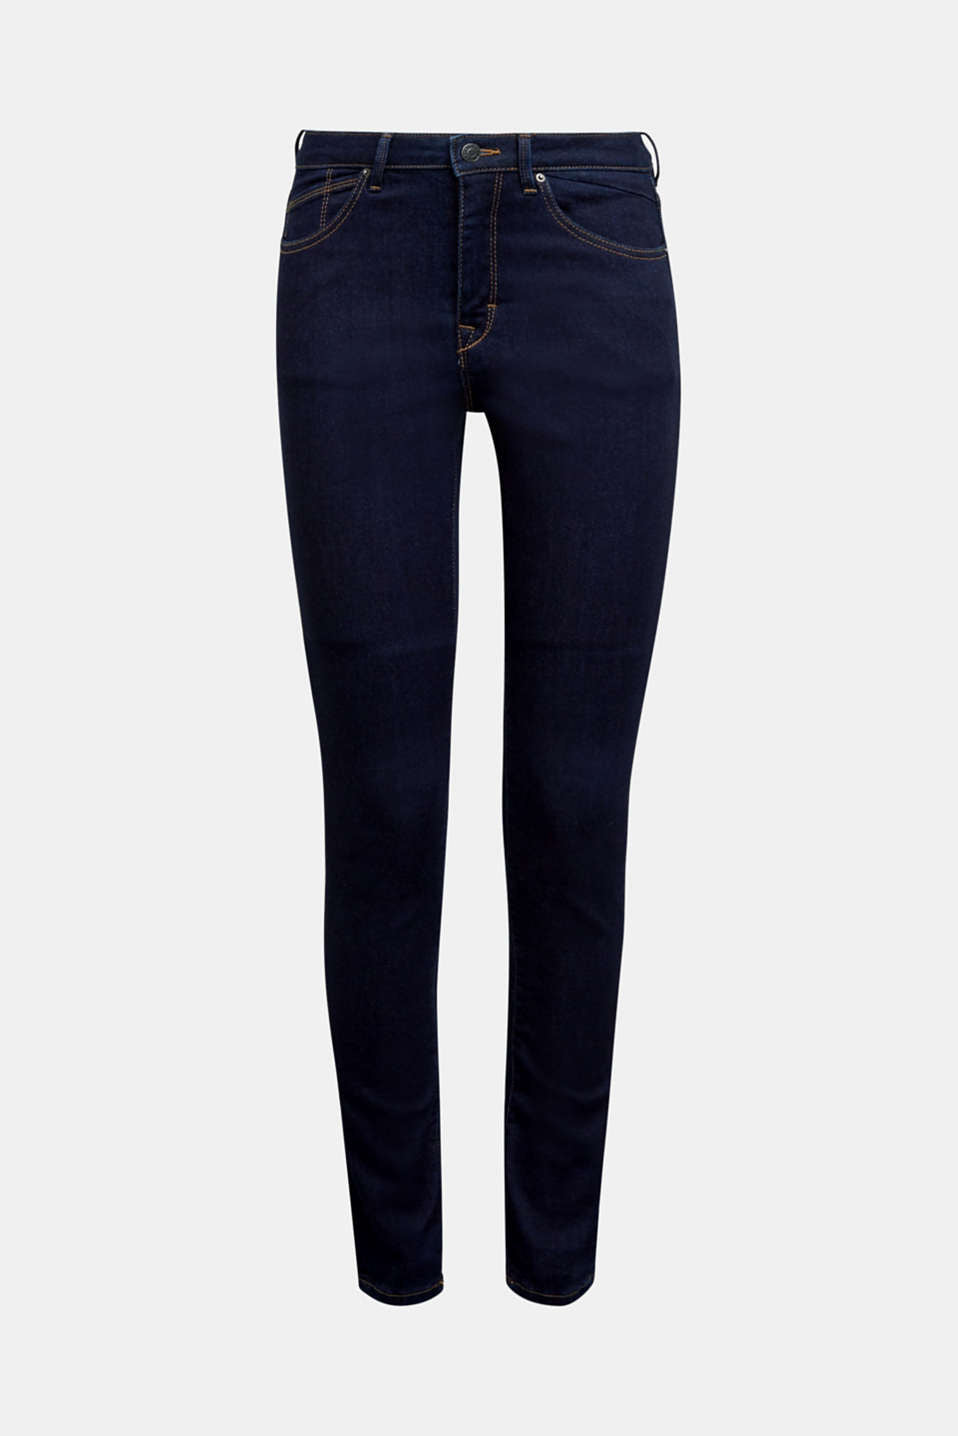 Esprit MR Skinny Fit Denim Organic